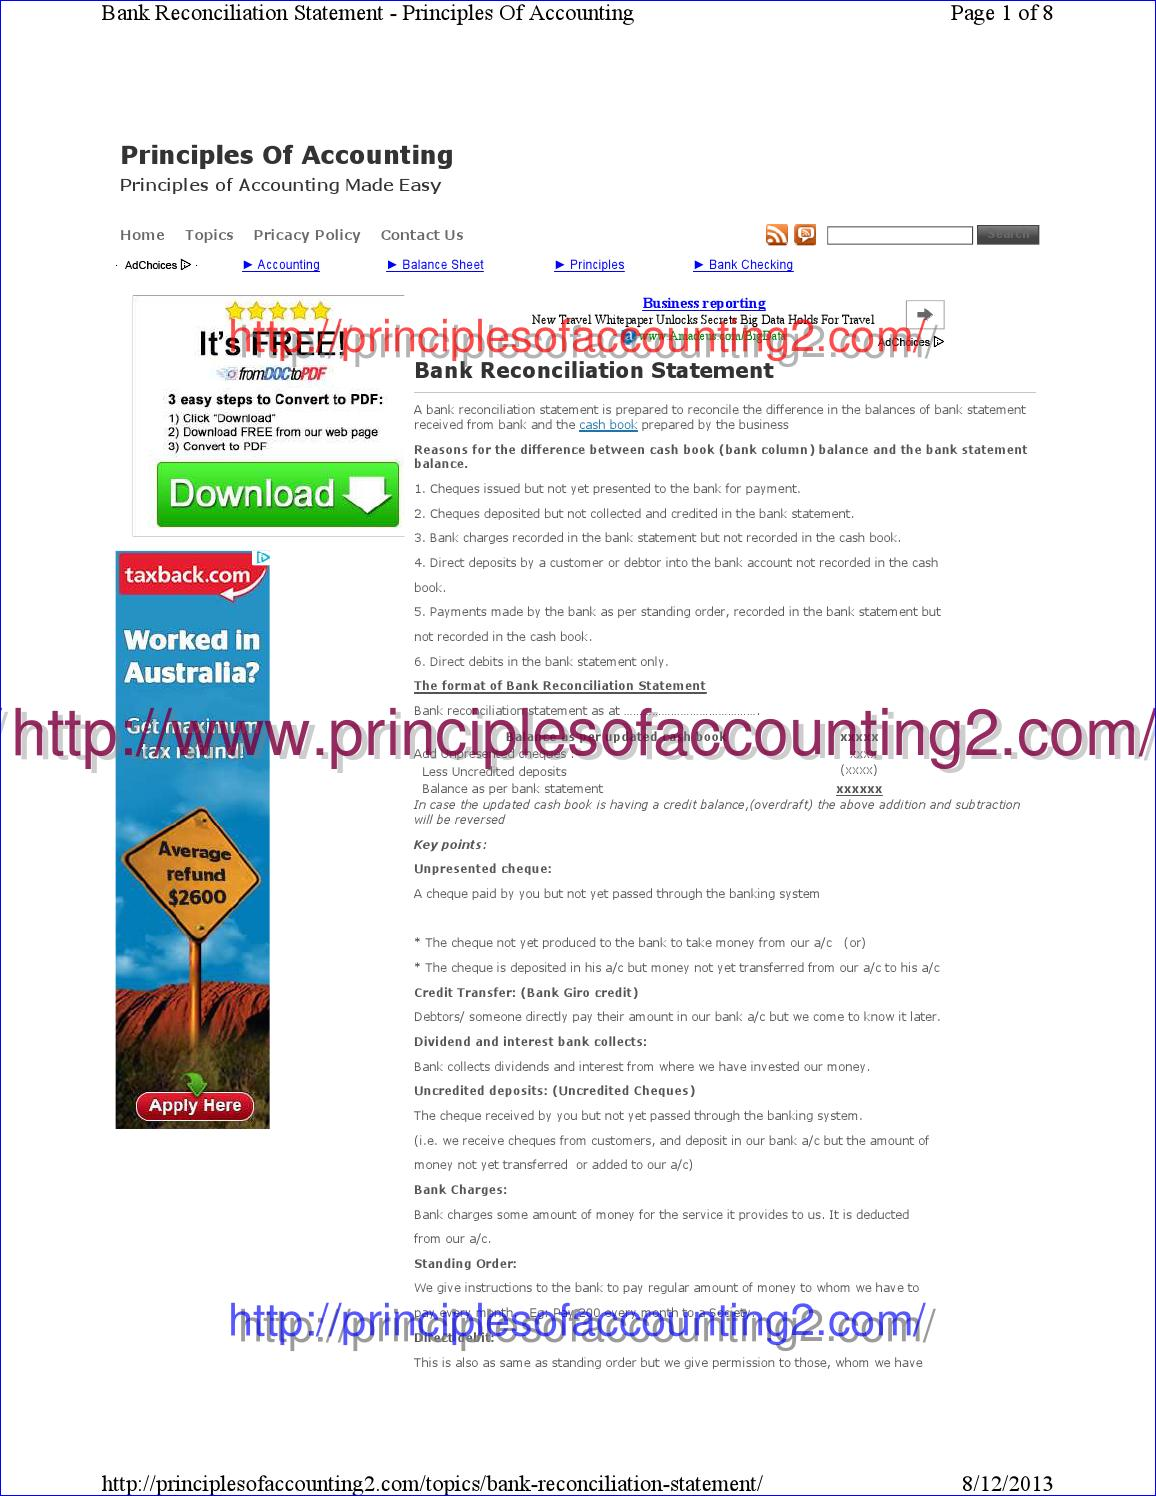 Bank Reconciliation Statement Principles Of Accounting By